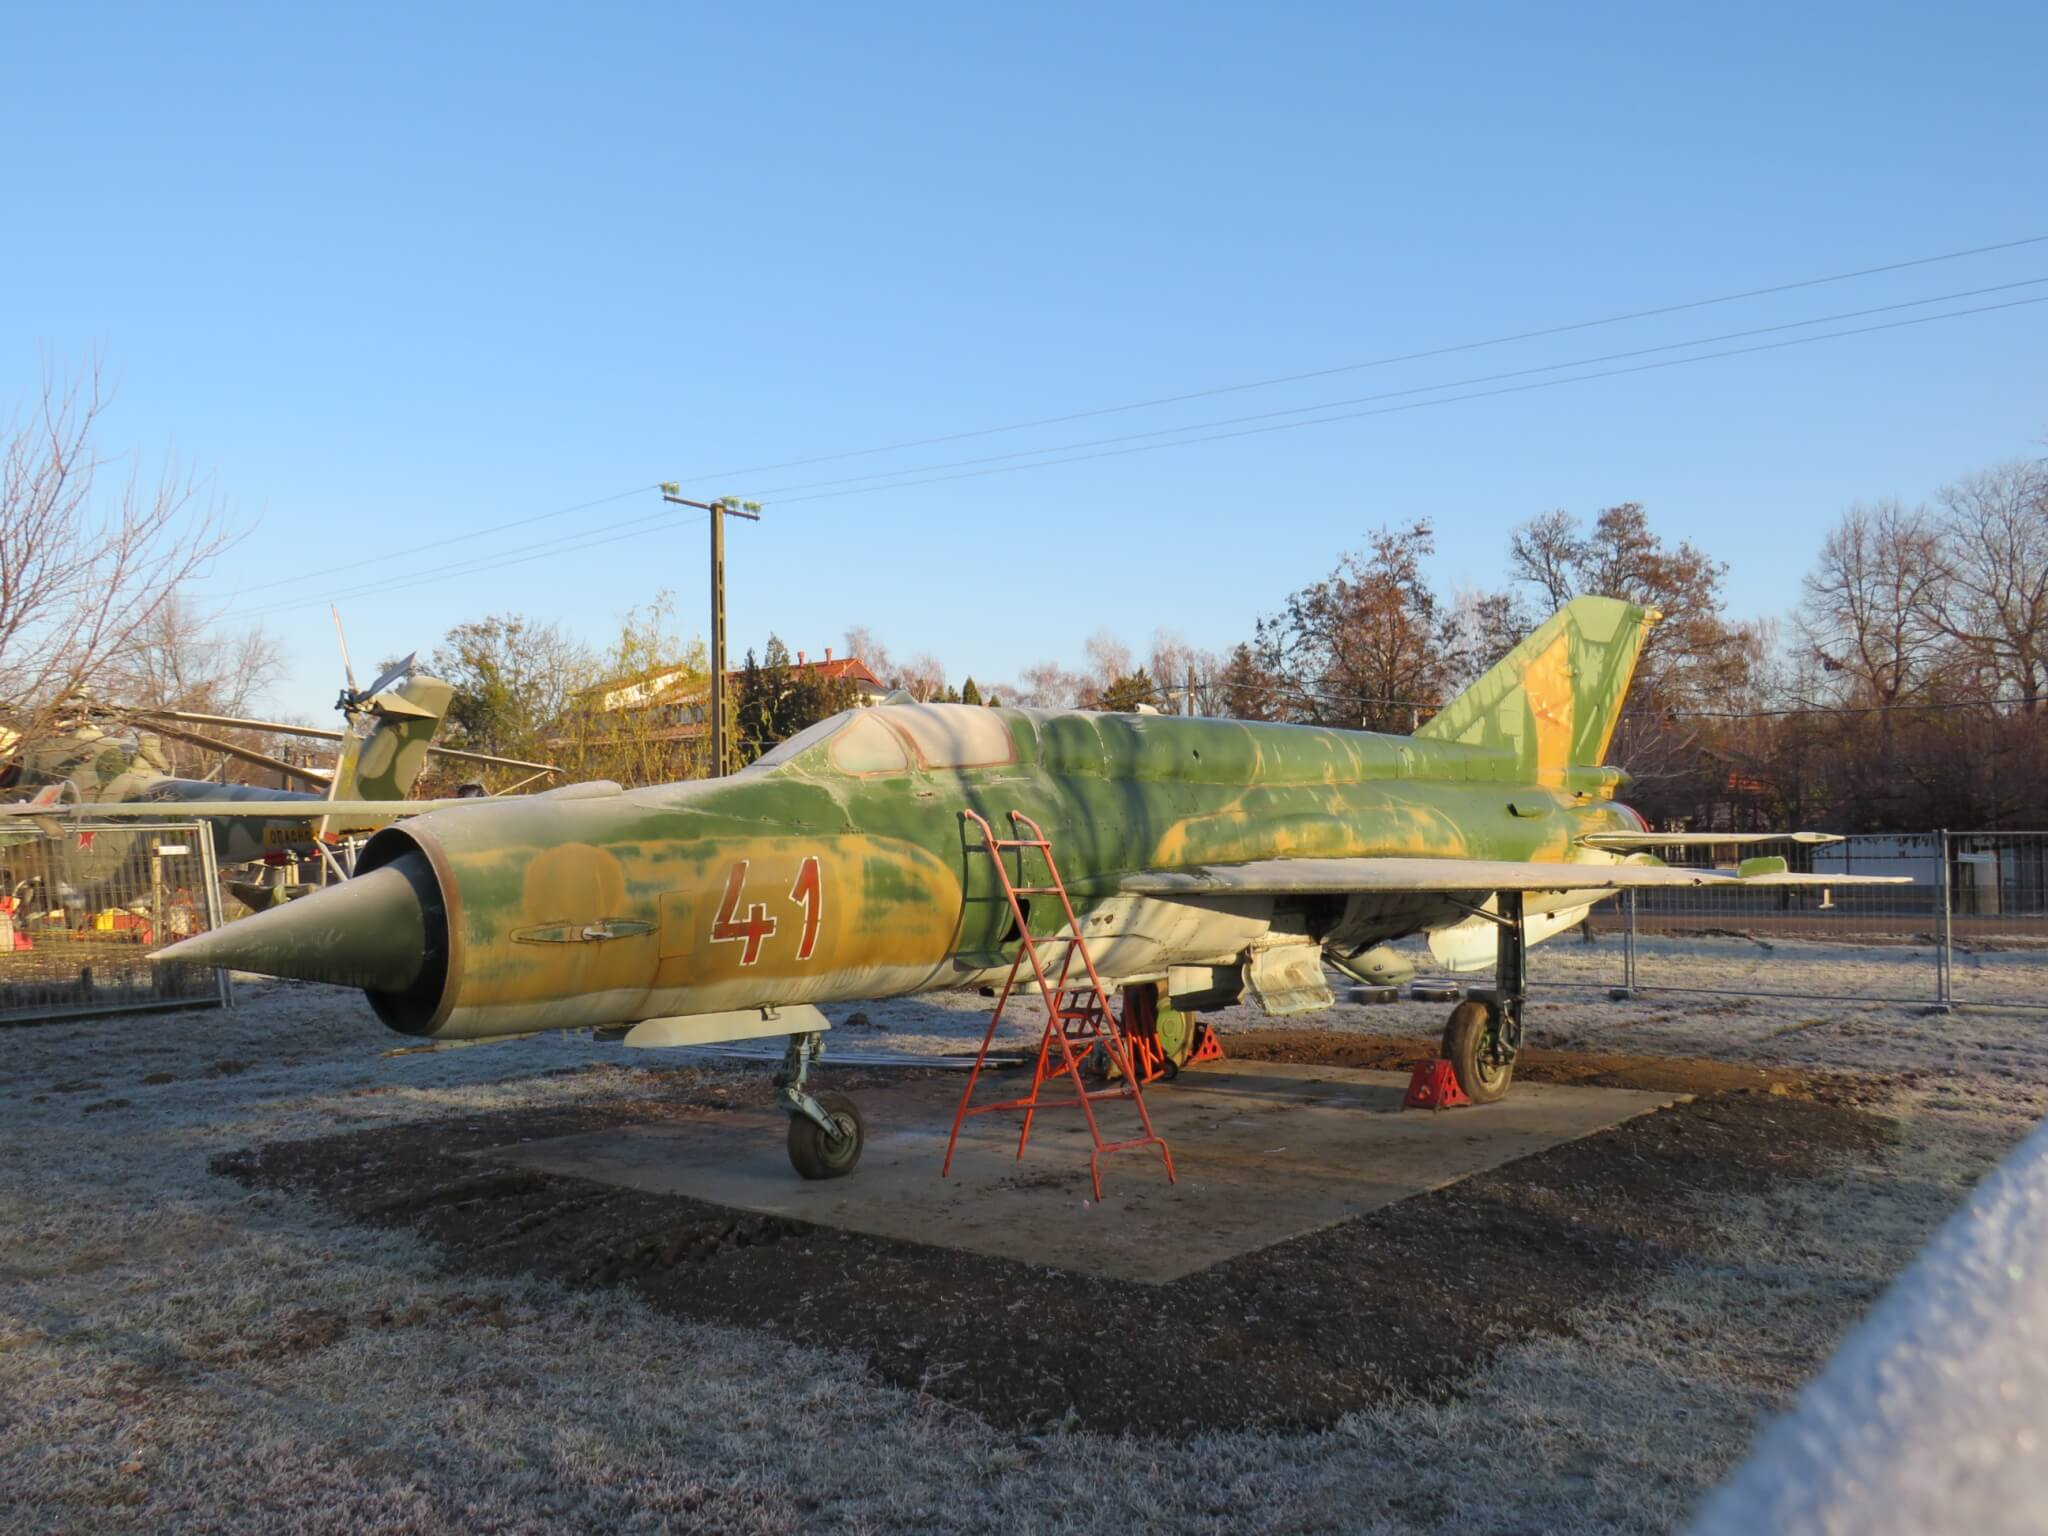 MiG-21bis '41', aquired by the museum on November 30, 2019